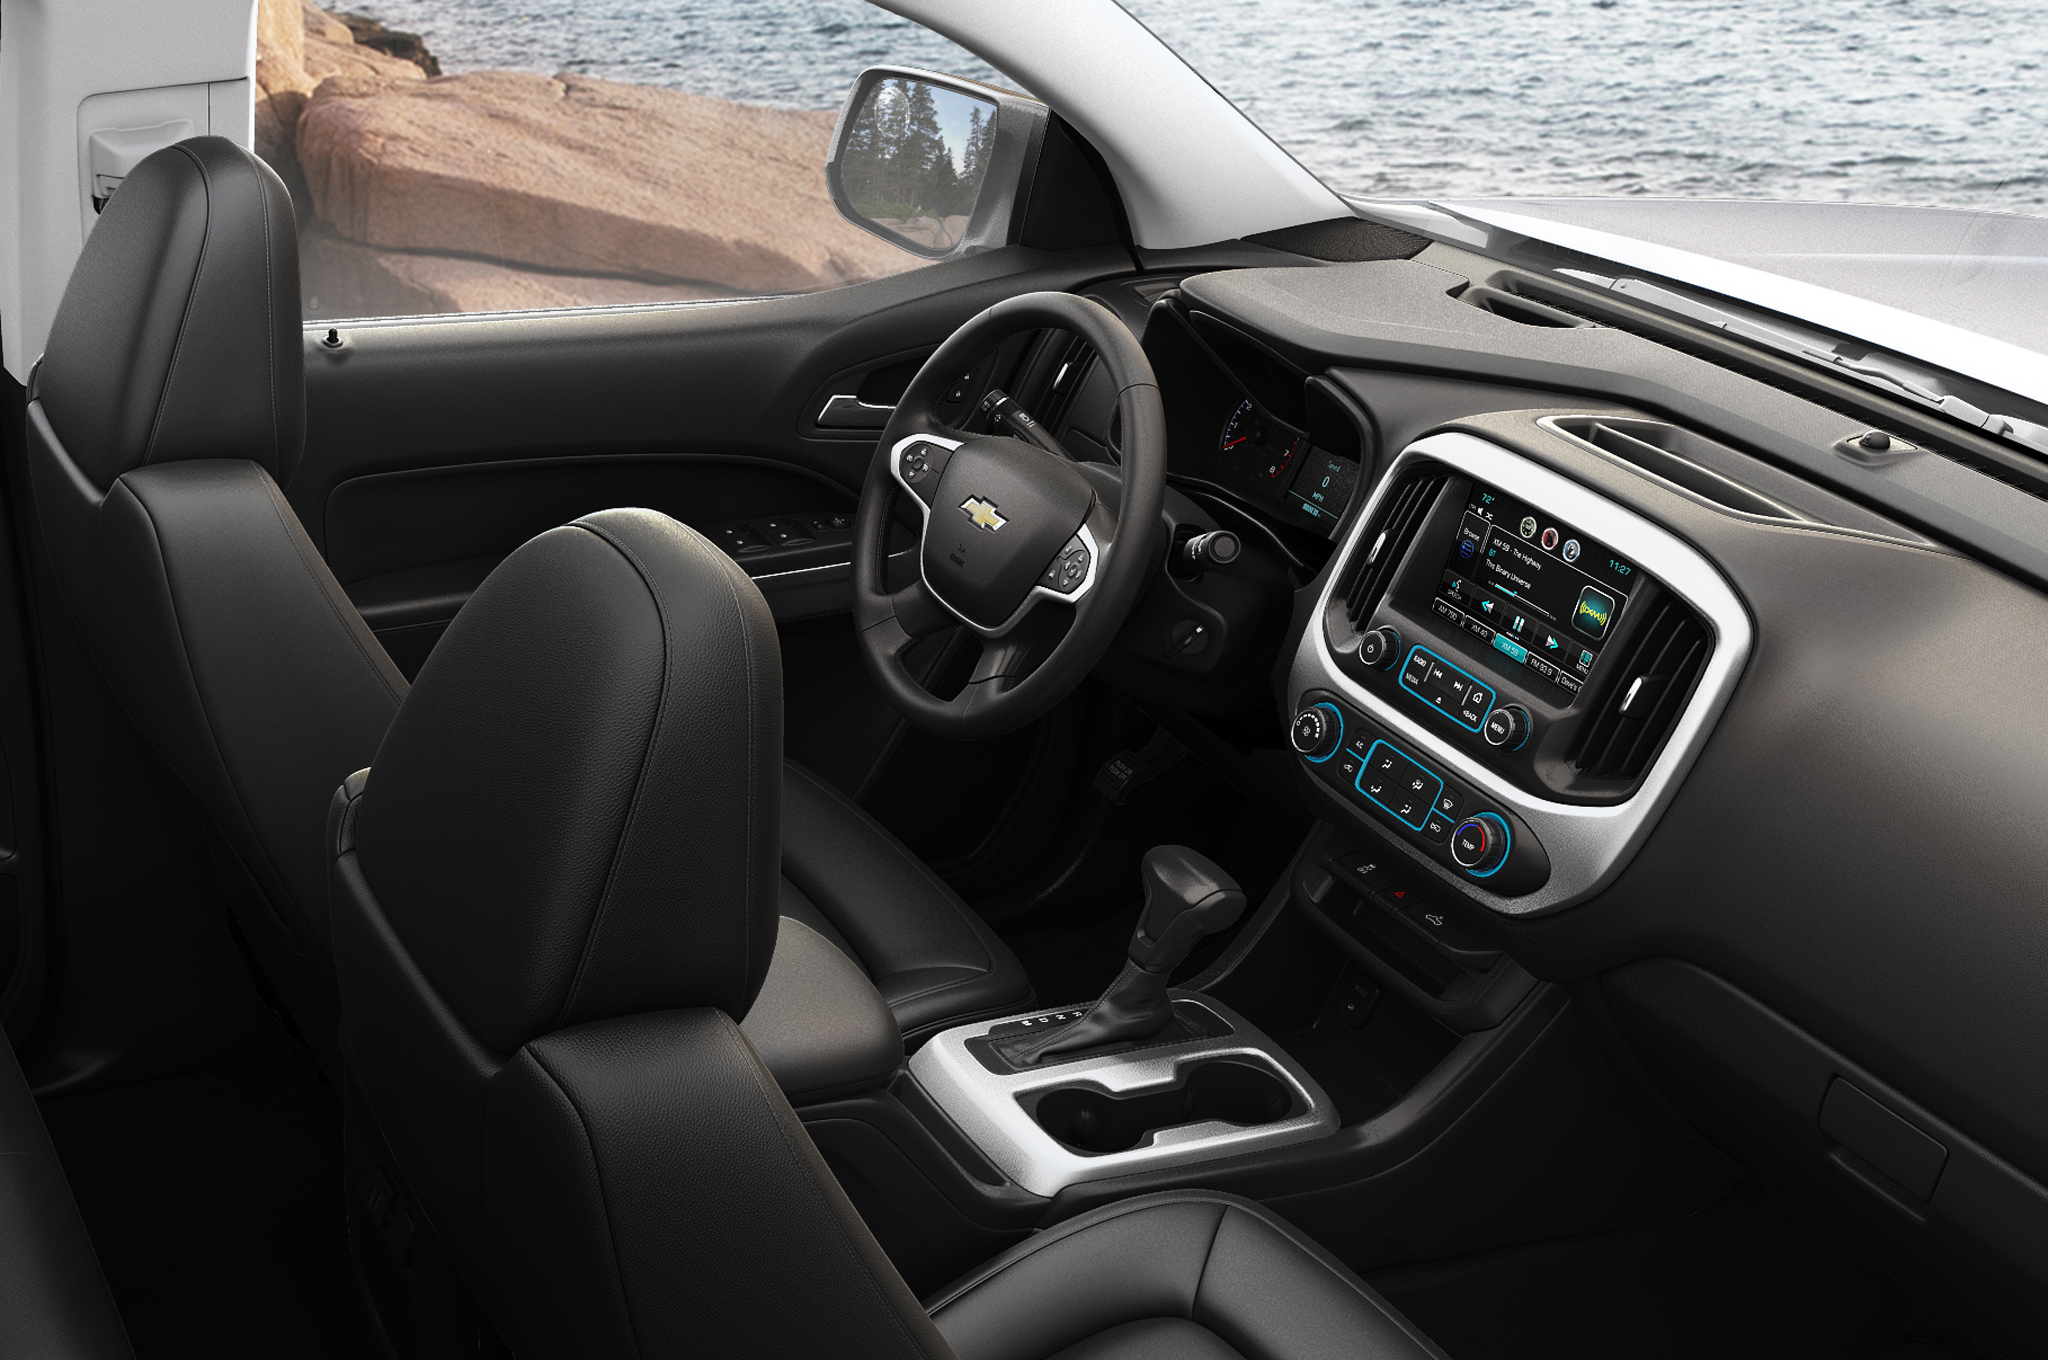 2015 Chevrolet Colorado Cockpit Dimensions (Photo 1 of 8)